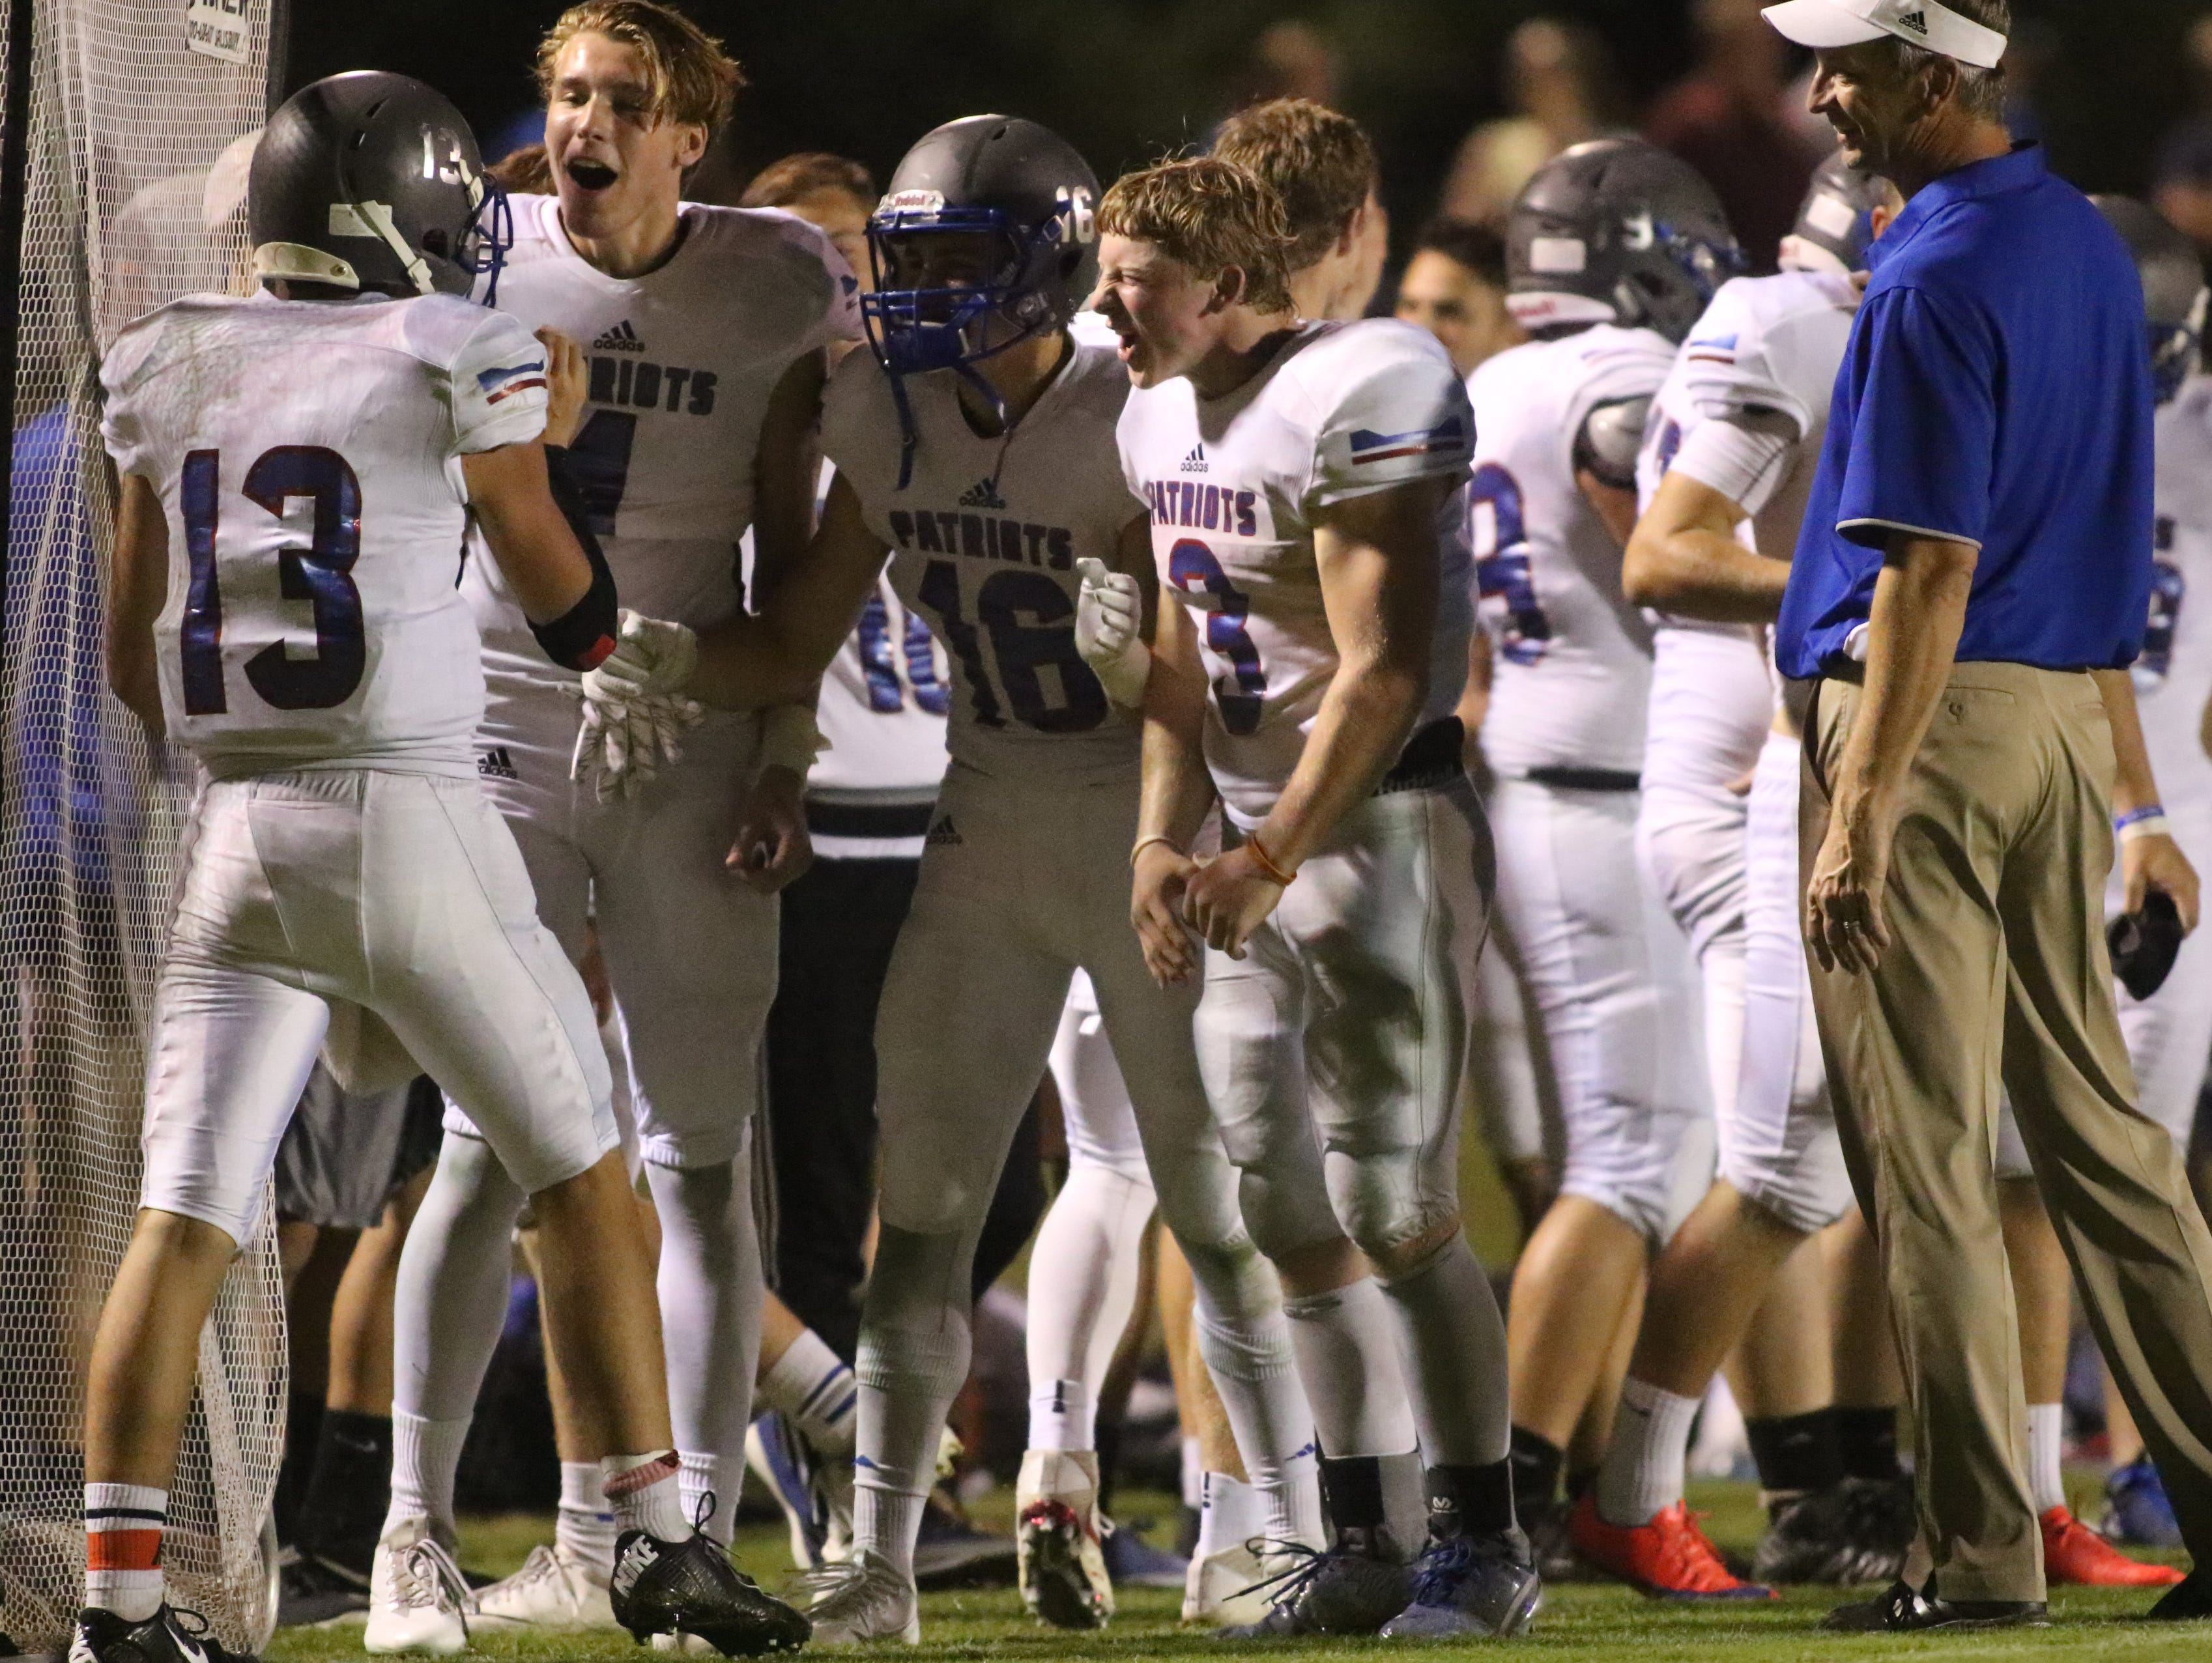 A late field goal gave Page a 38-35 victory over Giles County last Friday.